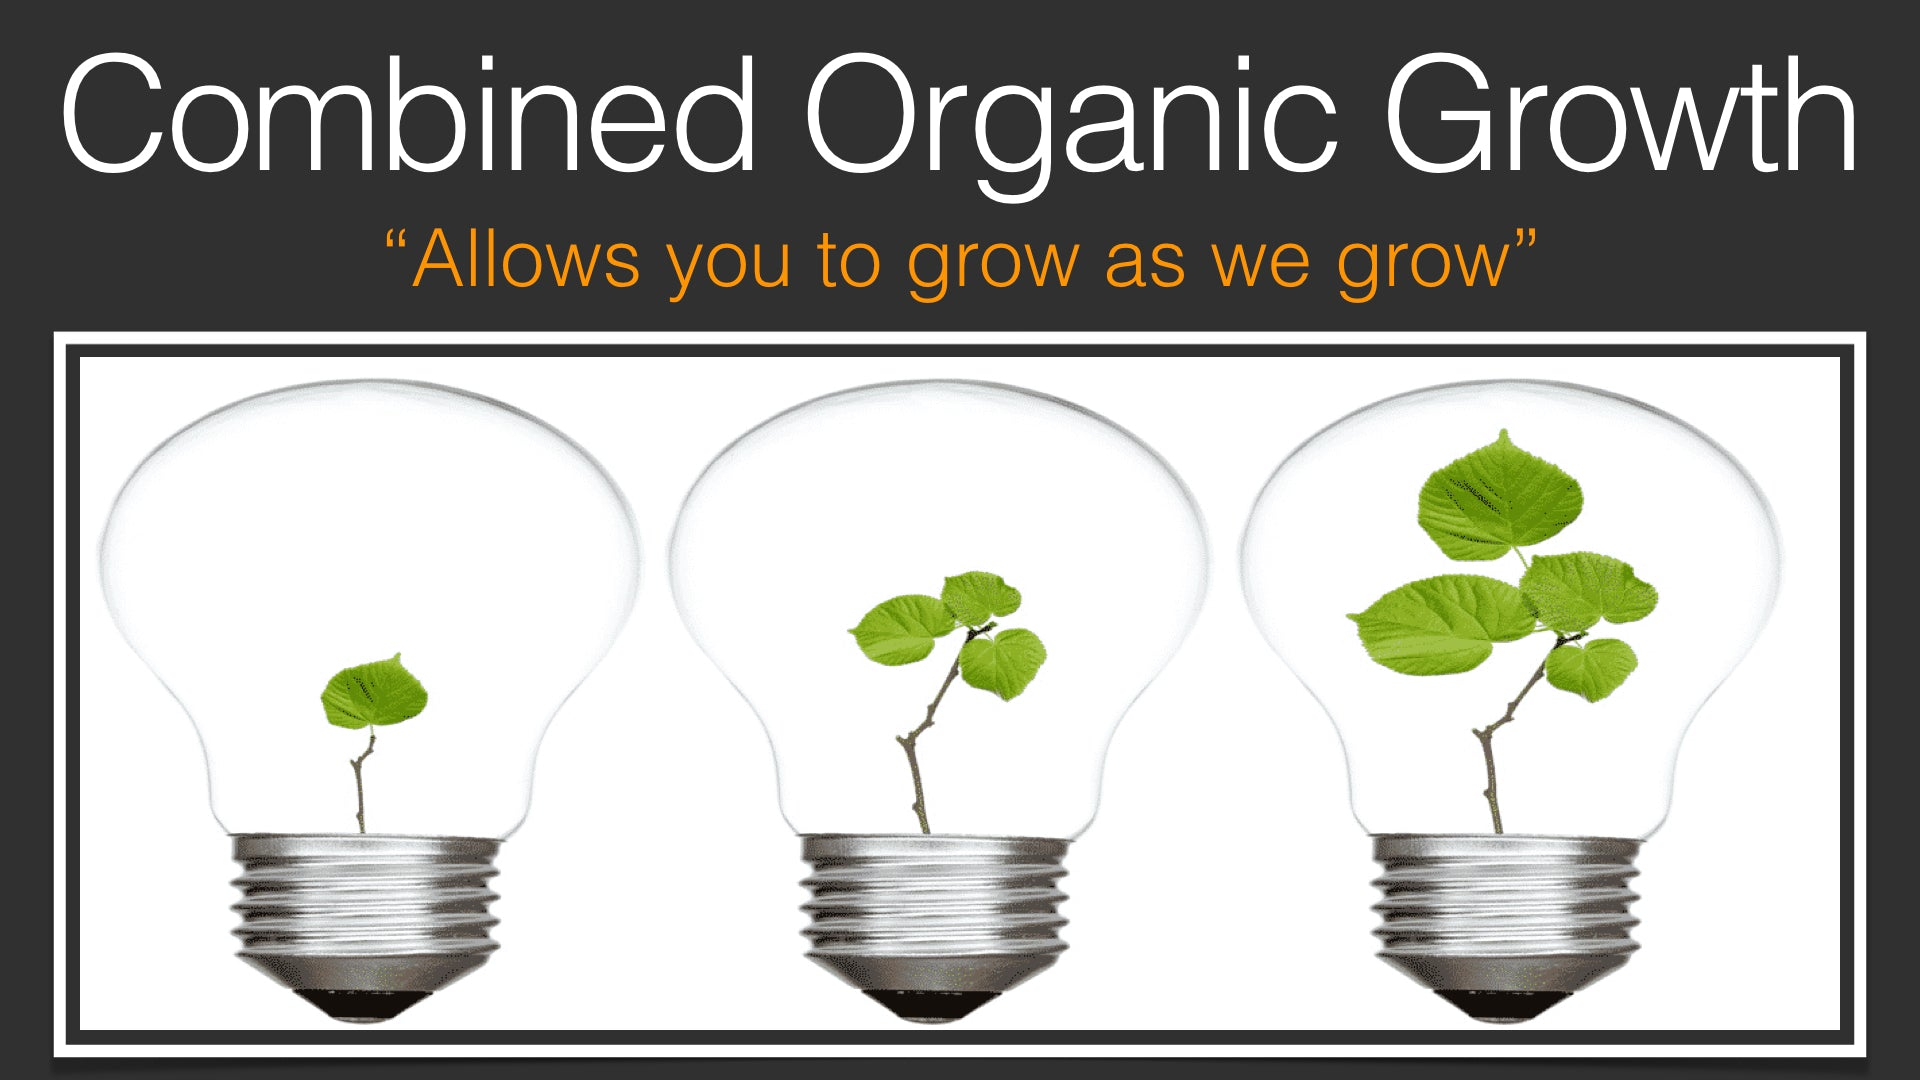 Combined organic Growth